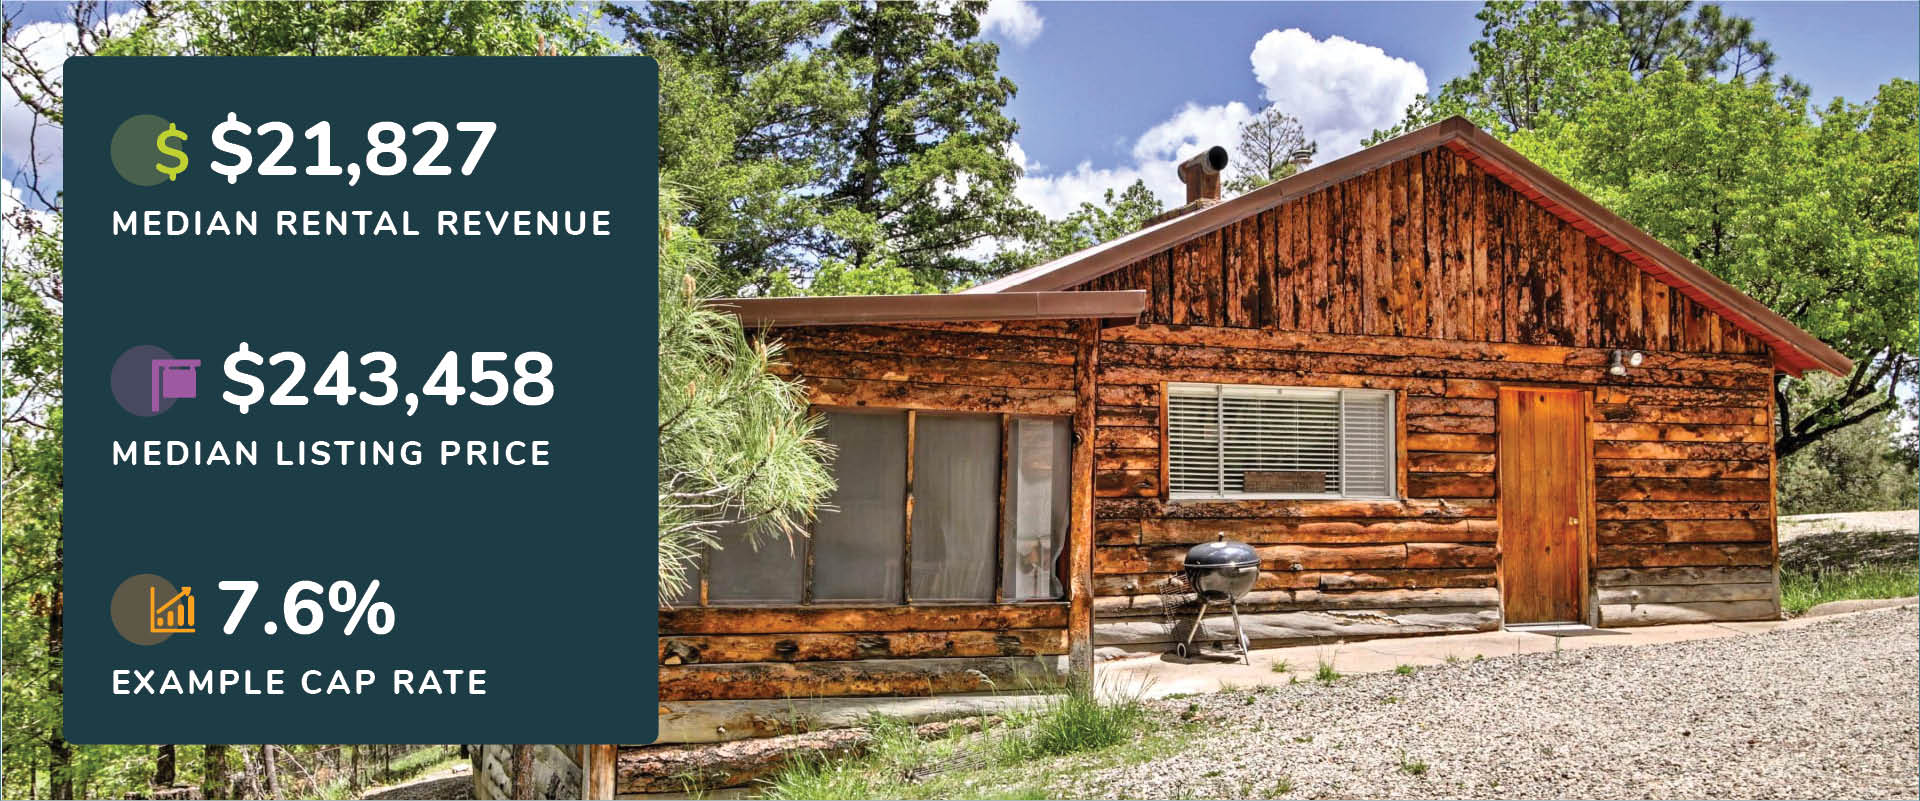 Graphic showing Ruidoso, New Mexico median rental revenue, listing price, and cap rate with a picture of a log cabin with lush trees.